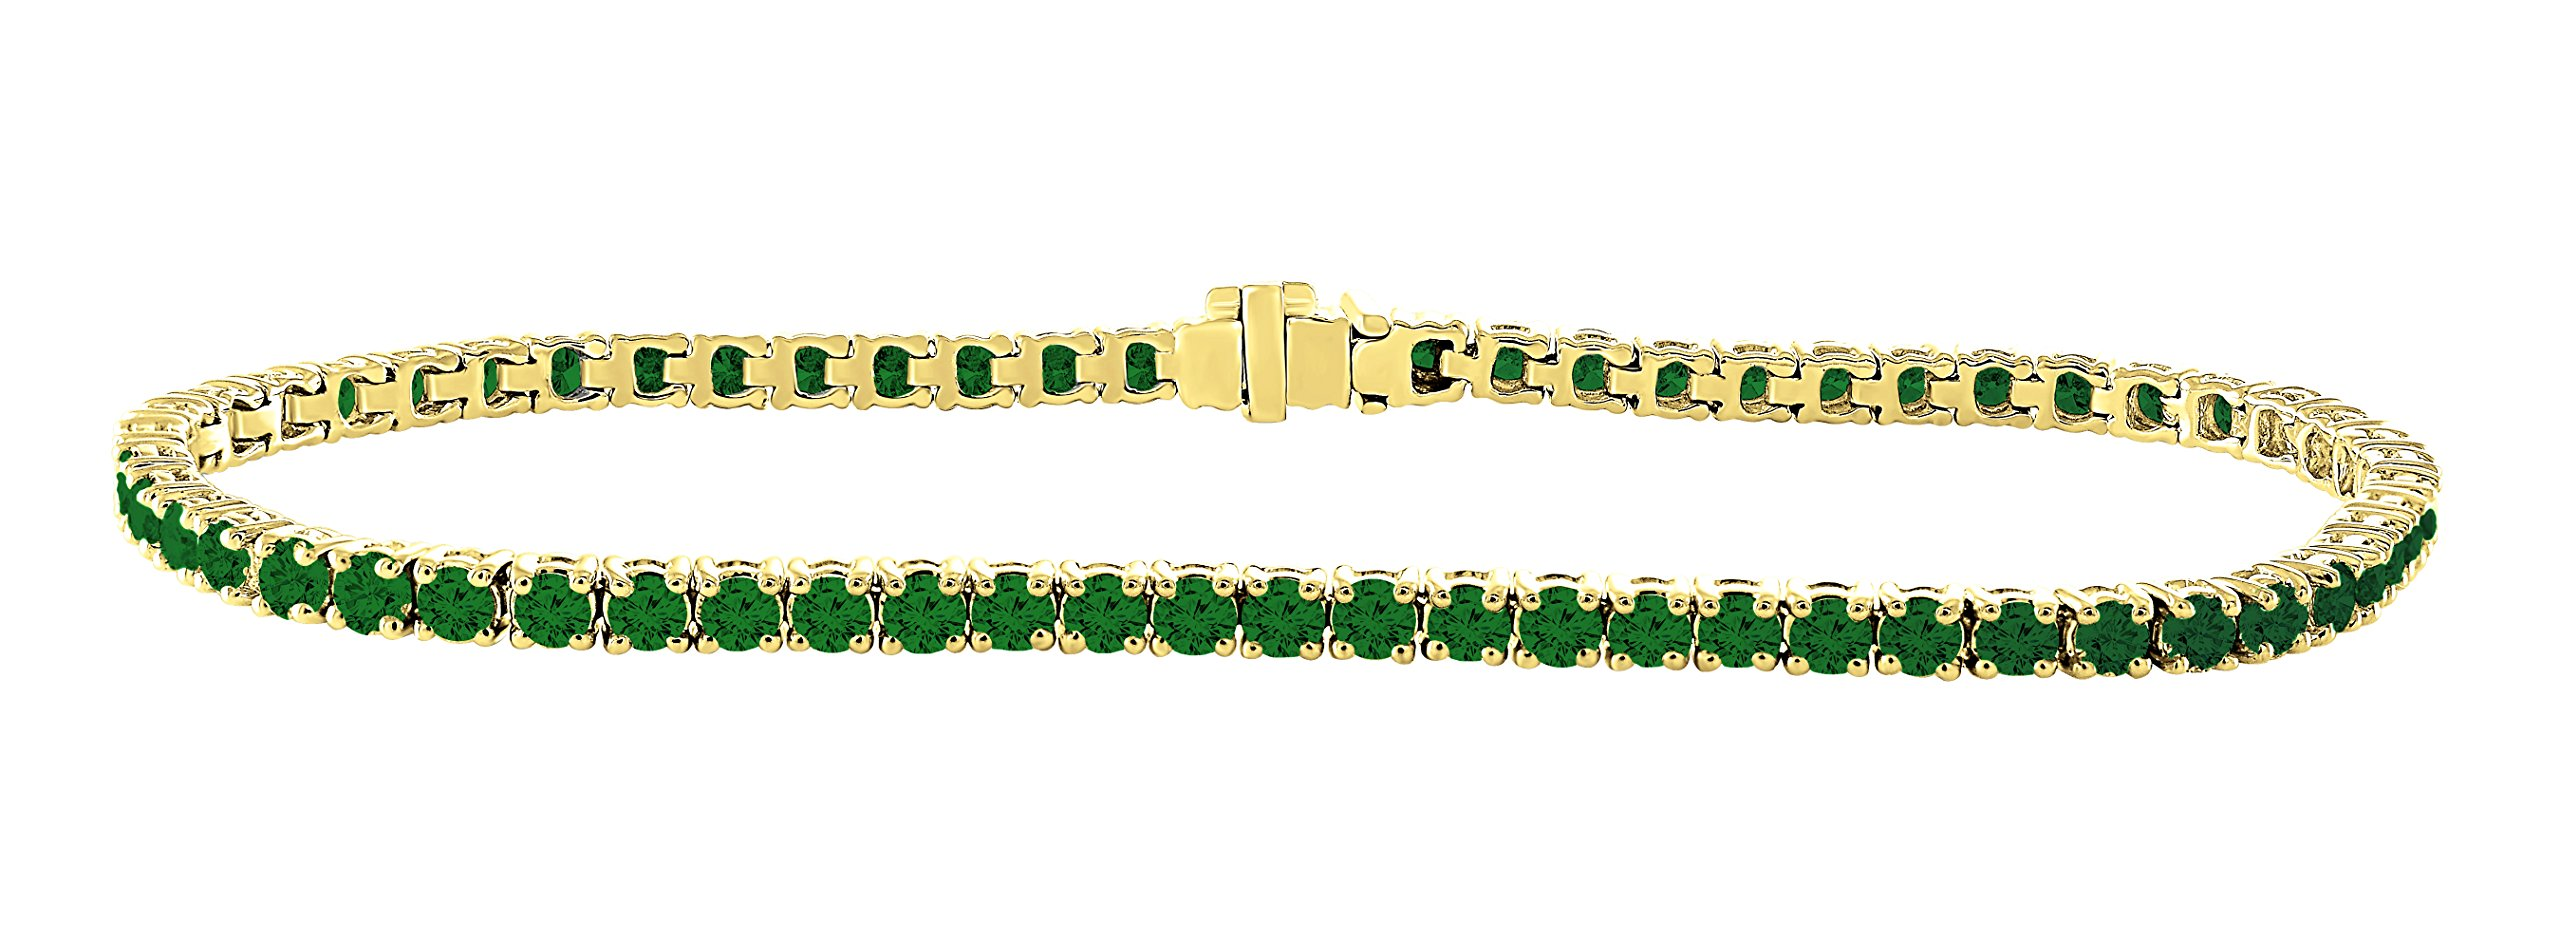 14K Yellow Gold 3.00 Carat (ctw) Natural Real Round Cut Green Emerald Tennis Bracelet For Women 7 Inches